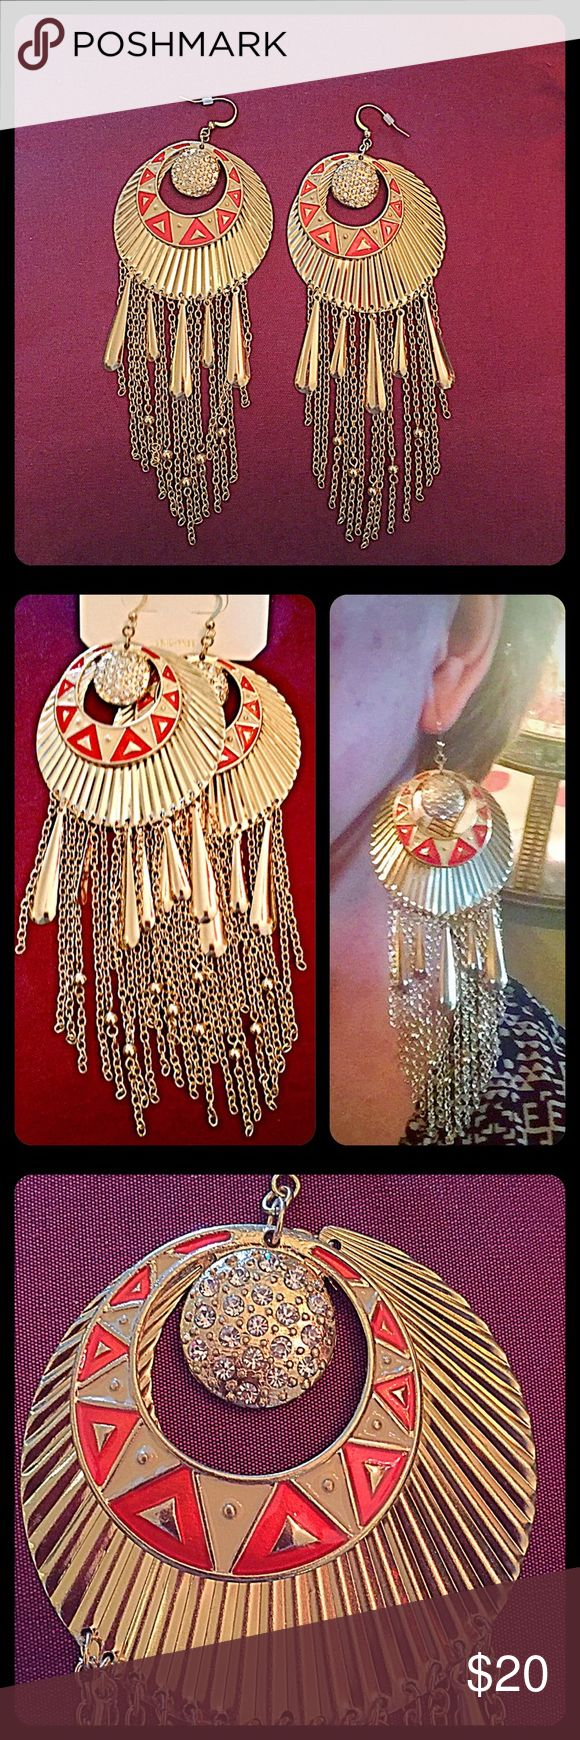 """30% OFF BUNDLES✨Global Chic Chandelier Earrings✨ These earrings are definite show stoppers! They're a very festive, boho & global pair of earrings to wear. Goldtone, with hanging fringe elements. The rounded upper part has a larger shell-like shape w/orange & cream enamel finishing, and the smaller circle has rhinestones. Fishhook style. Length=5.5"""", Width=2.5"""". NWT. Analie Jewelry Earrings"""